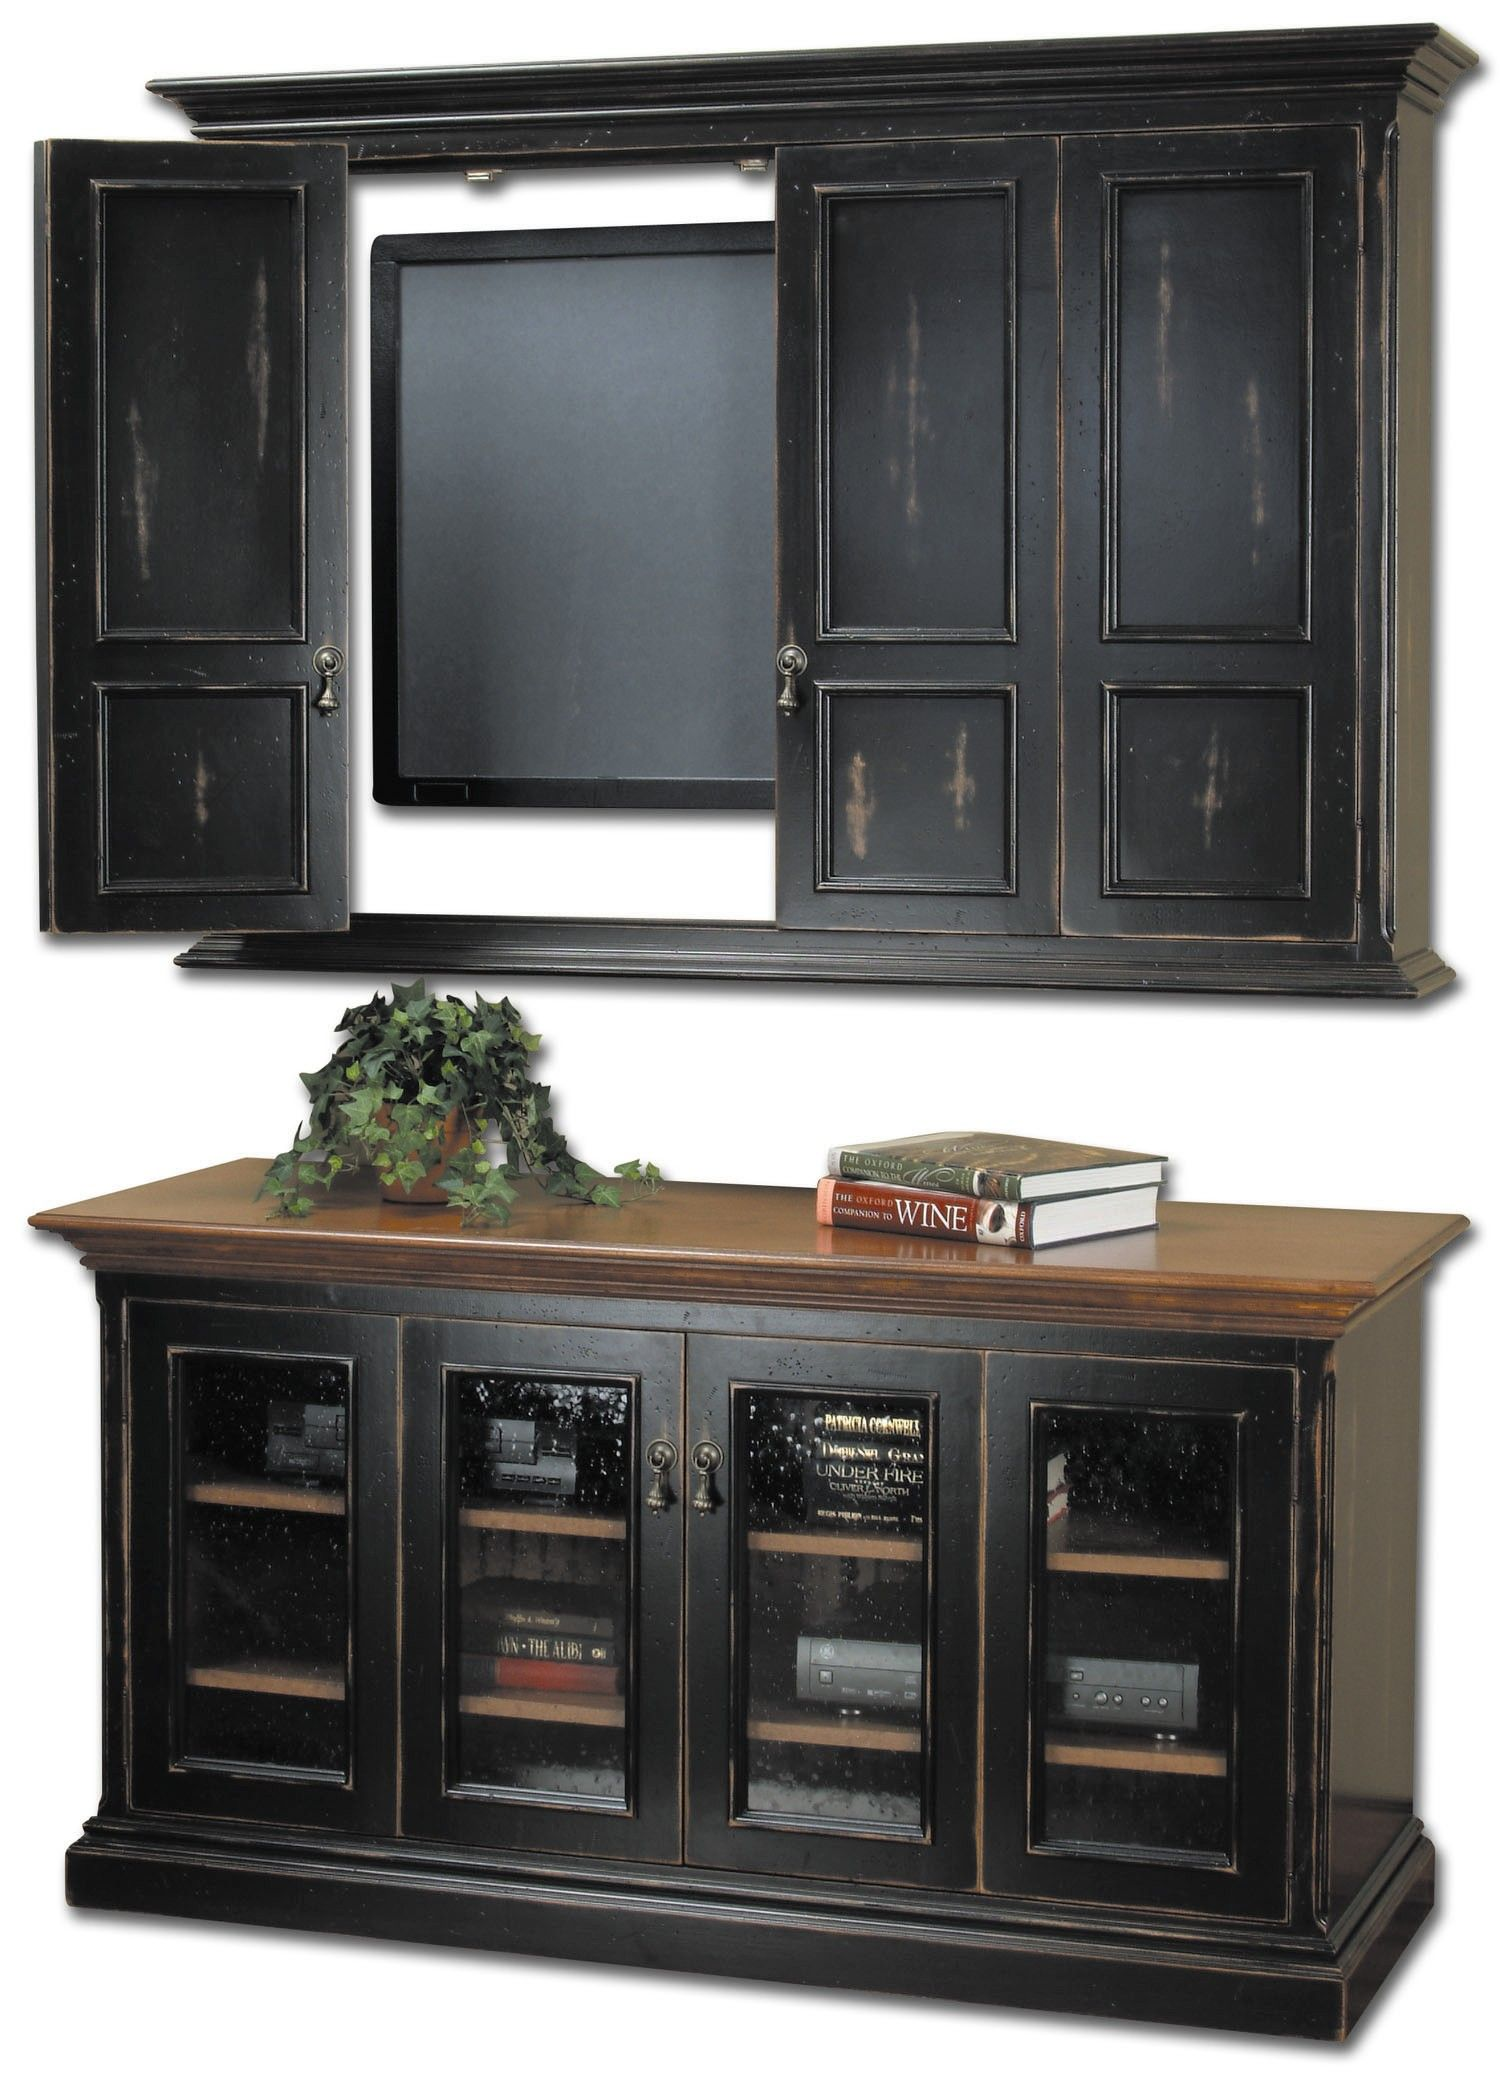 Wooden cabinets with glass doors built in large lcd over rustic wooden cabinets with glass doors built in large lcd over rustic black cabinets glass doors planetlyrics Images